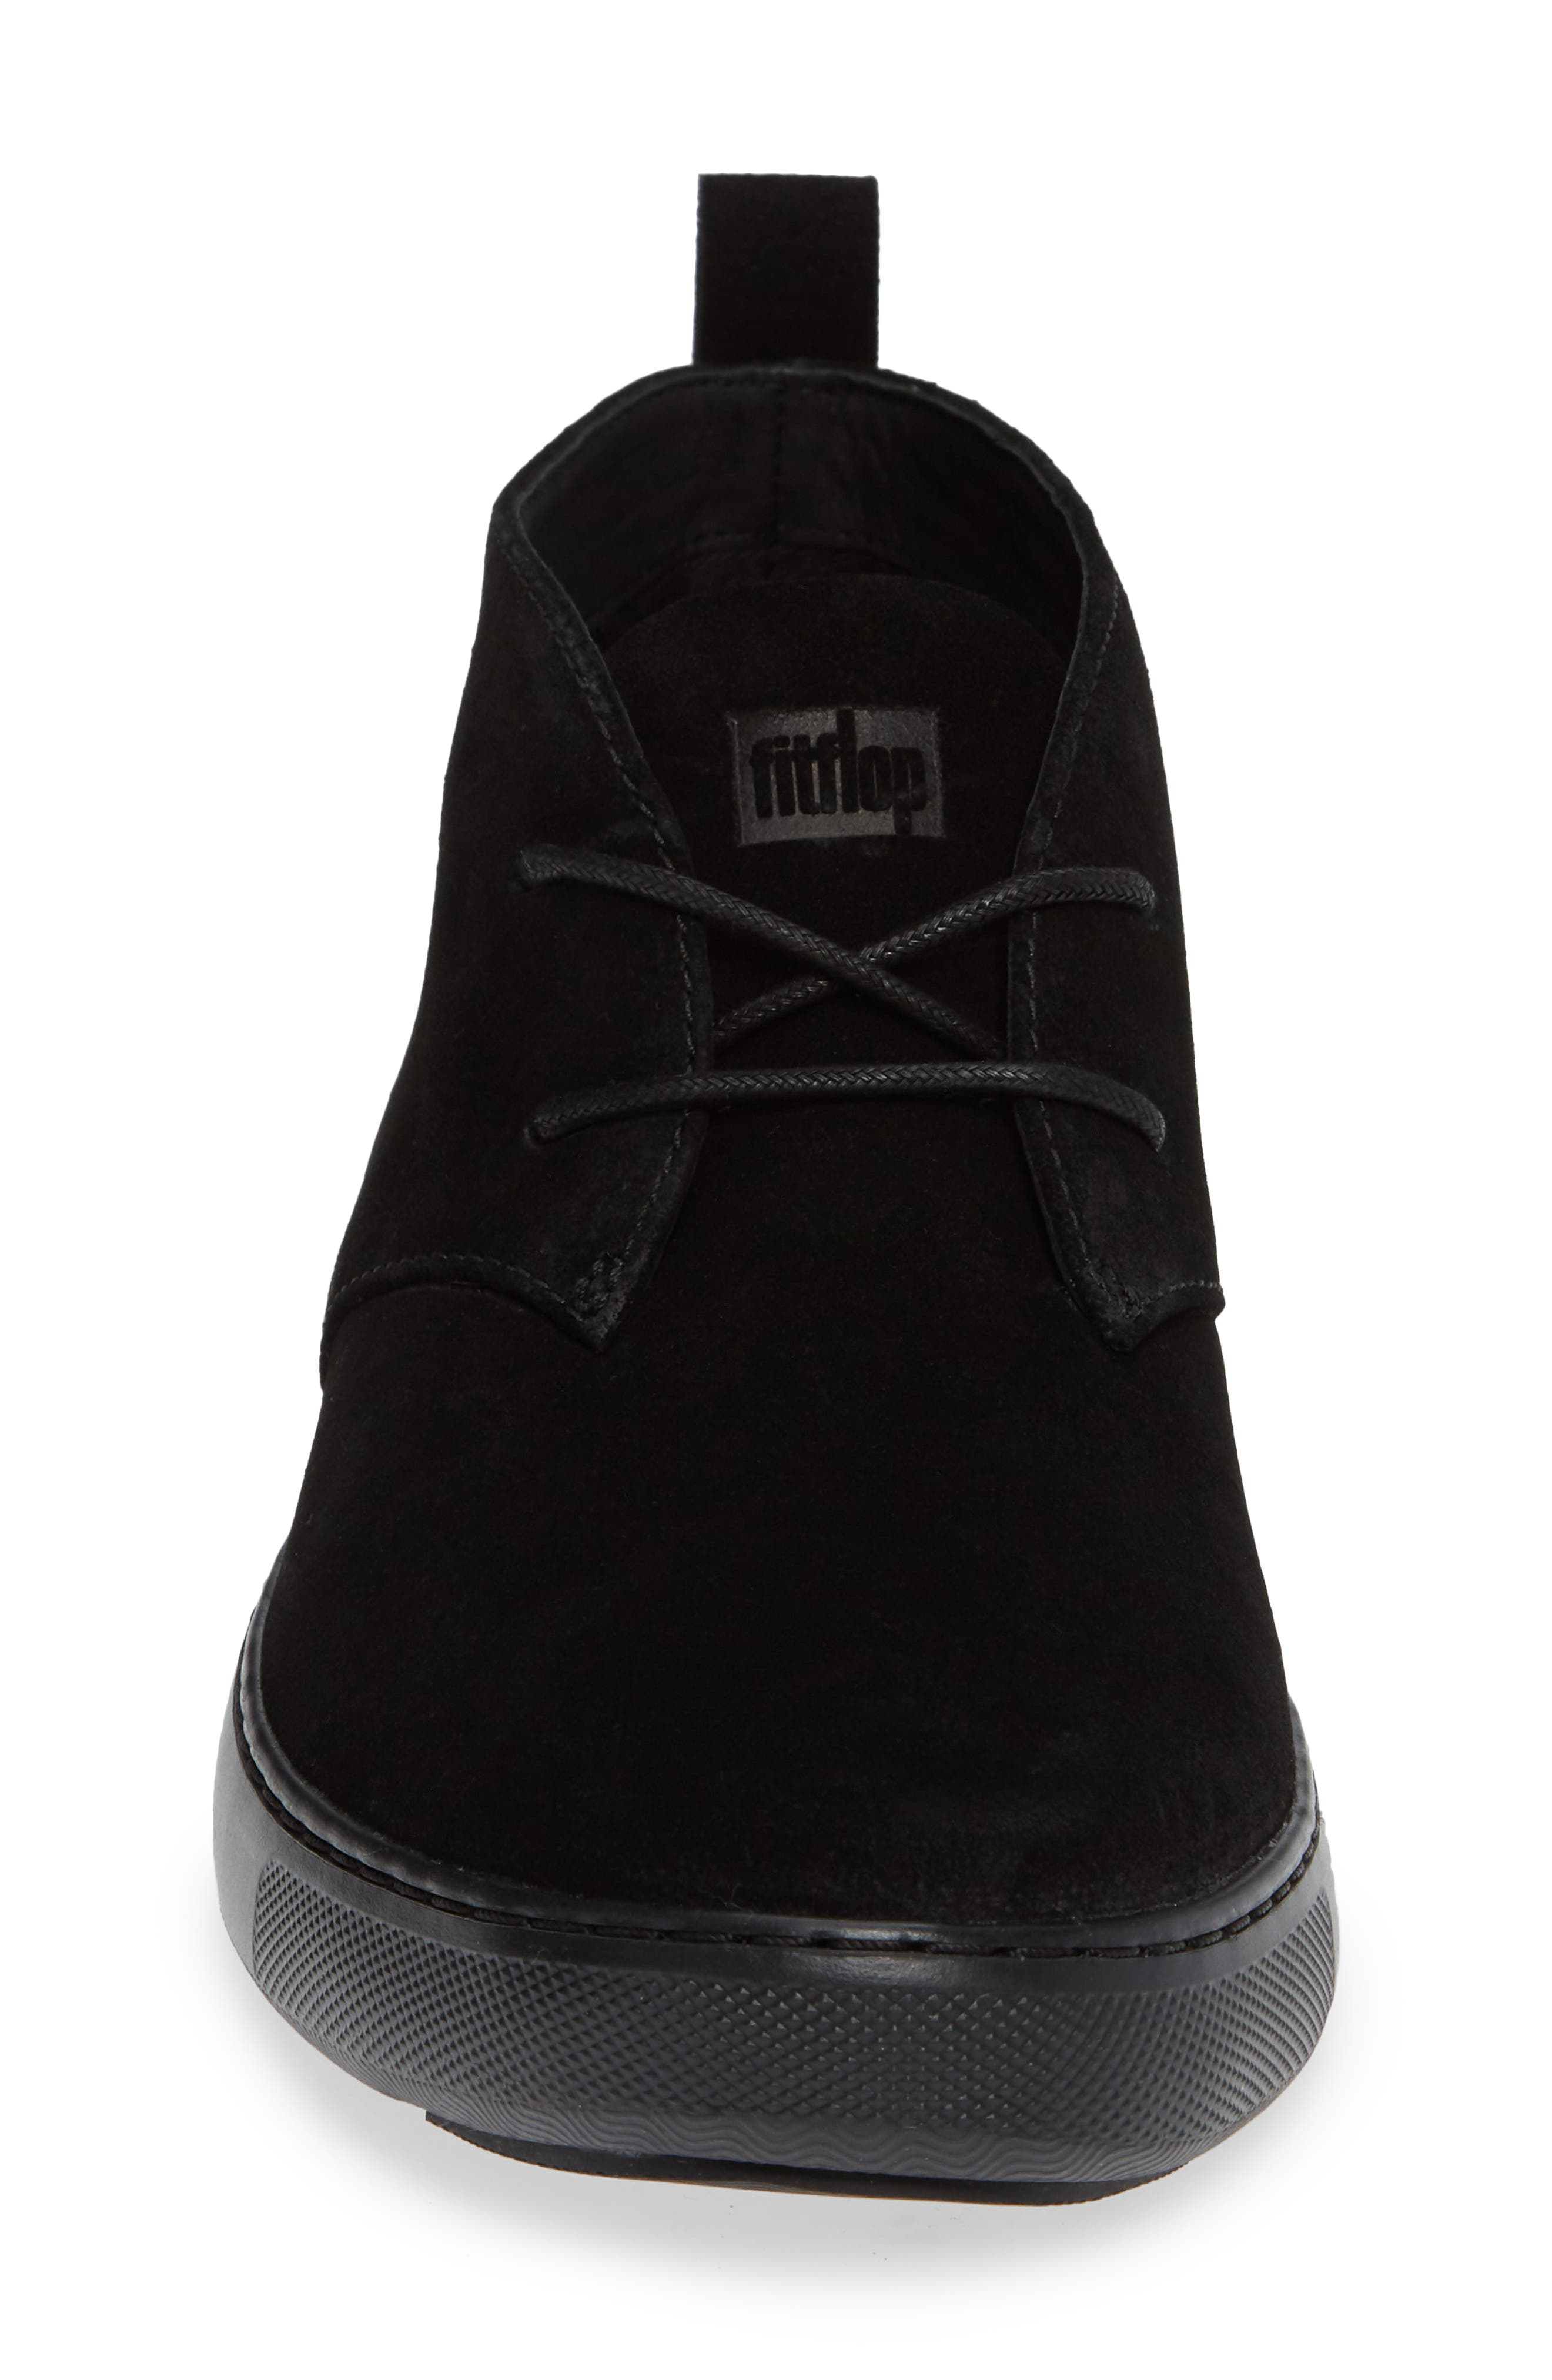 Zackery Chukka Boot,                             Alternate thumbnail 4, color,                             001